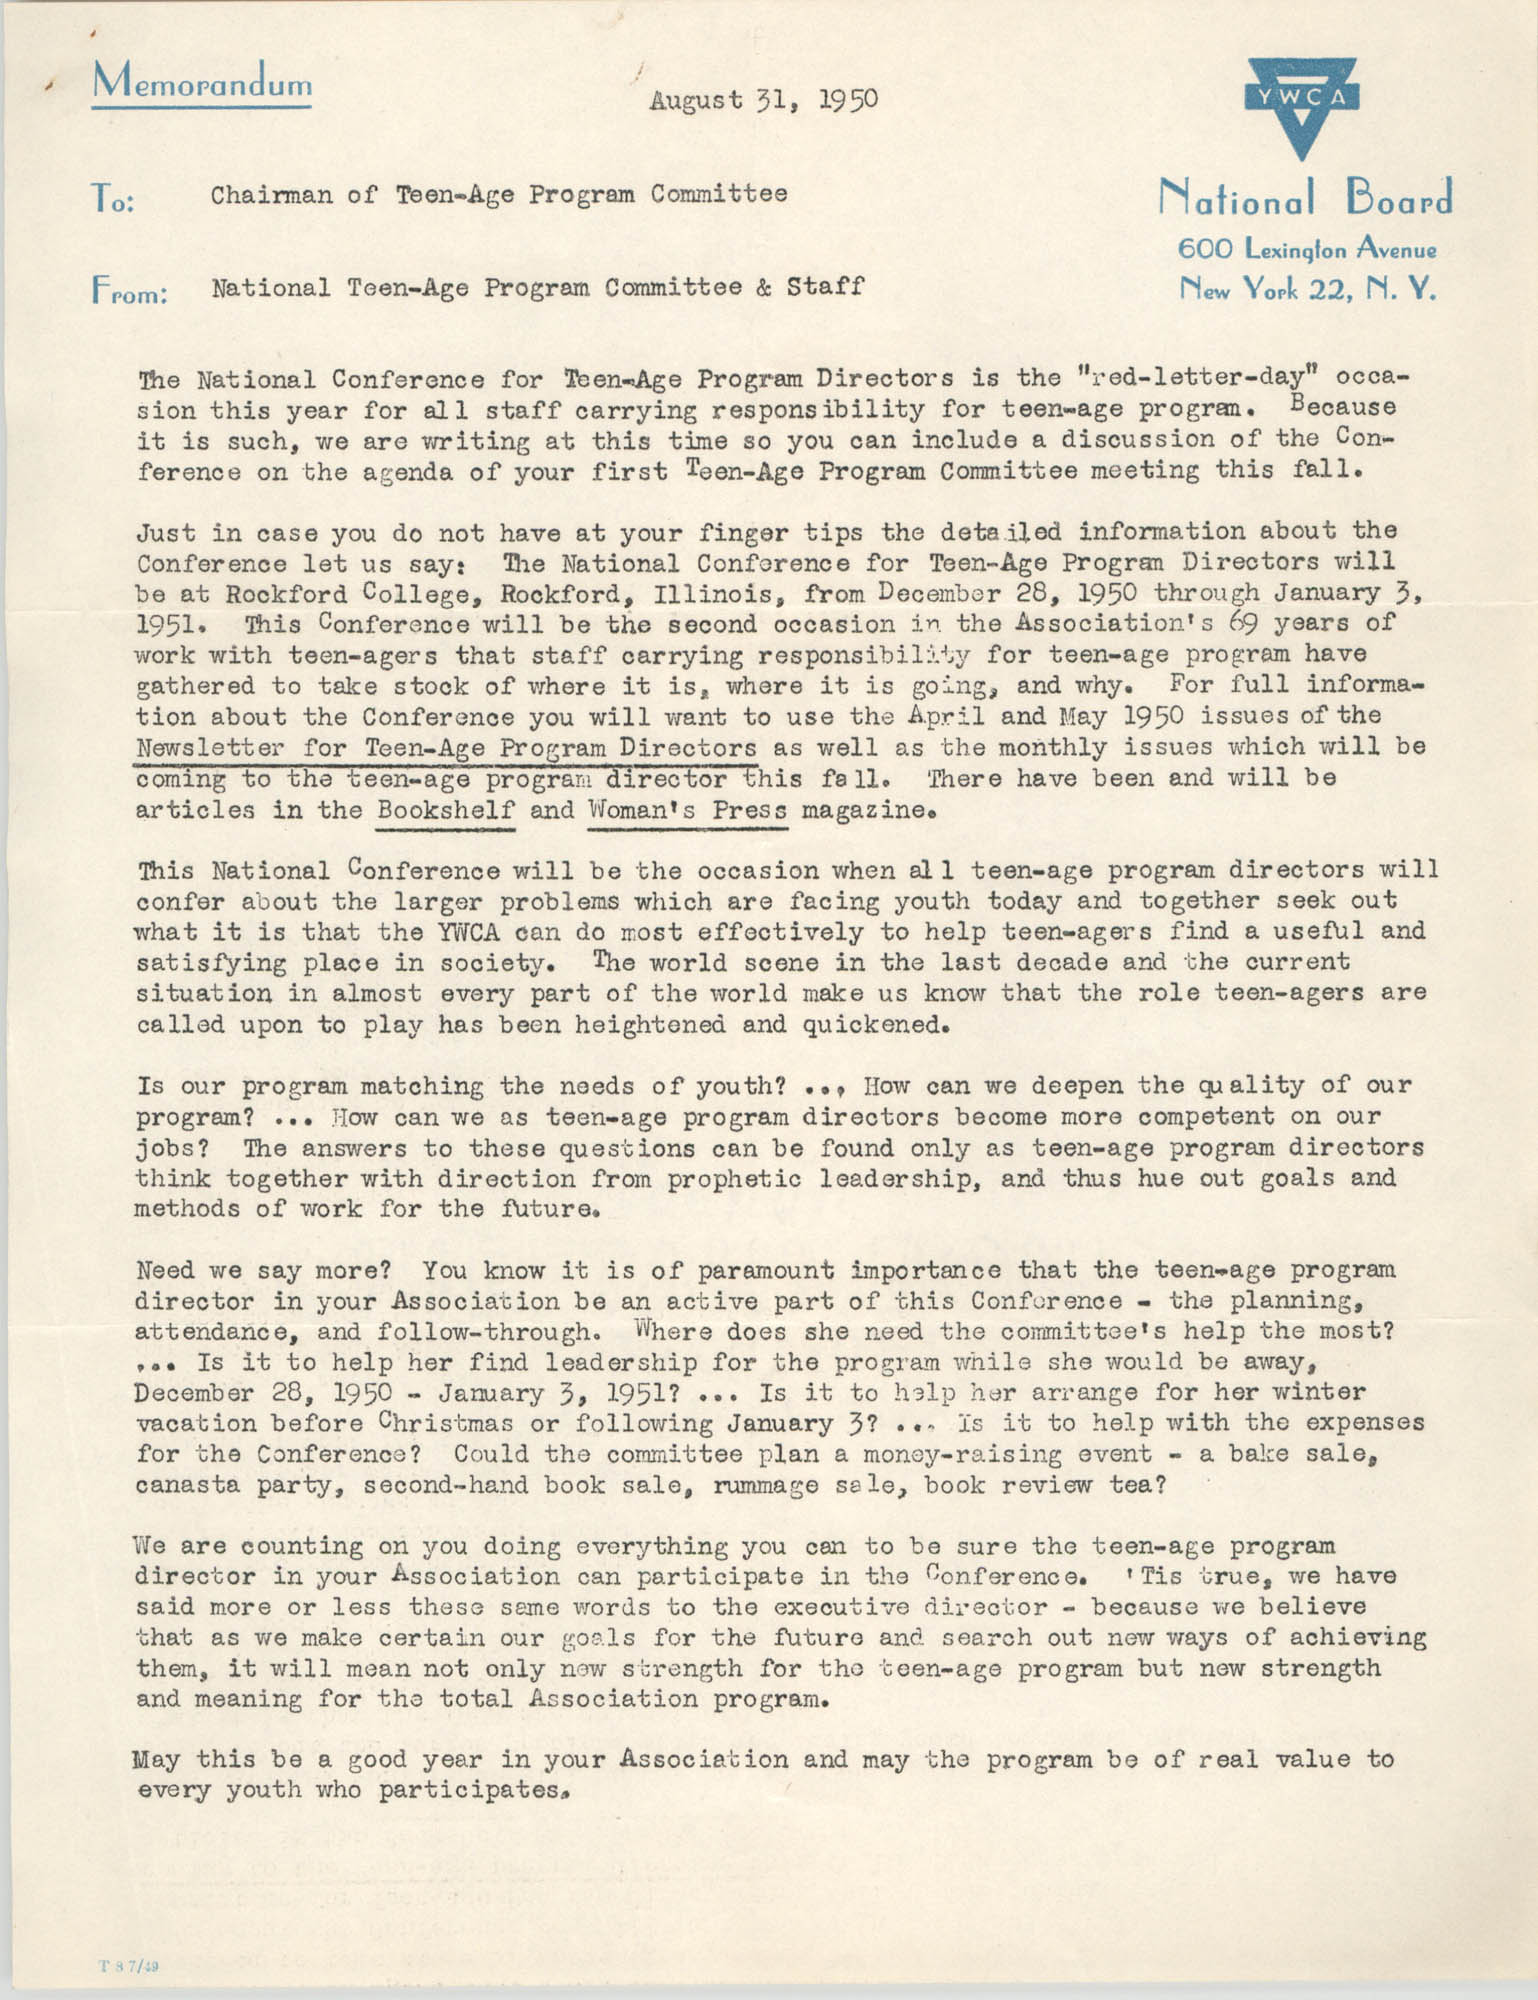 National Board of the Y.W.C.A. Memorandum, August 31, 1950